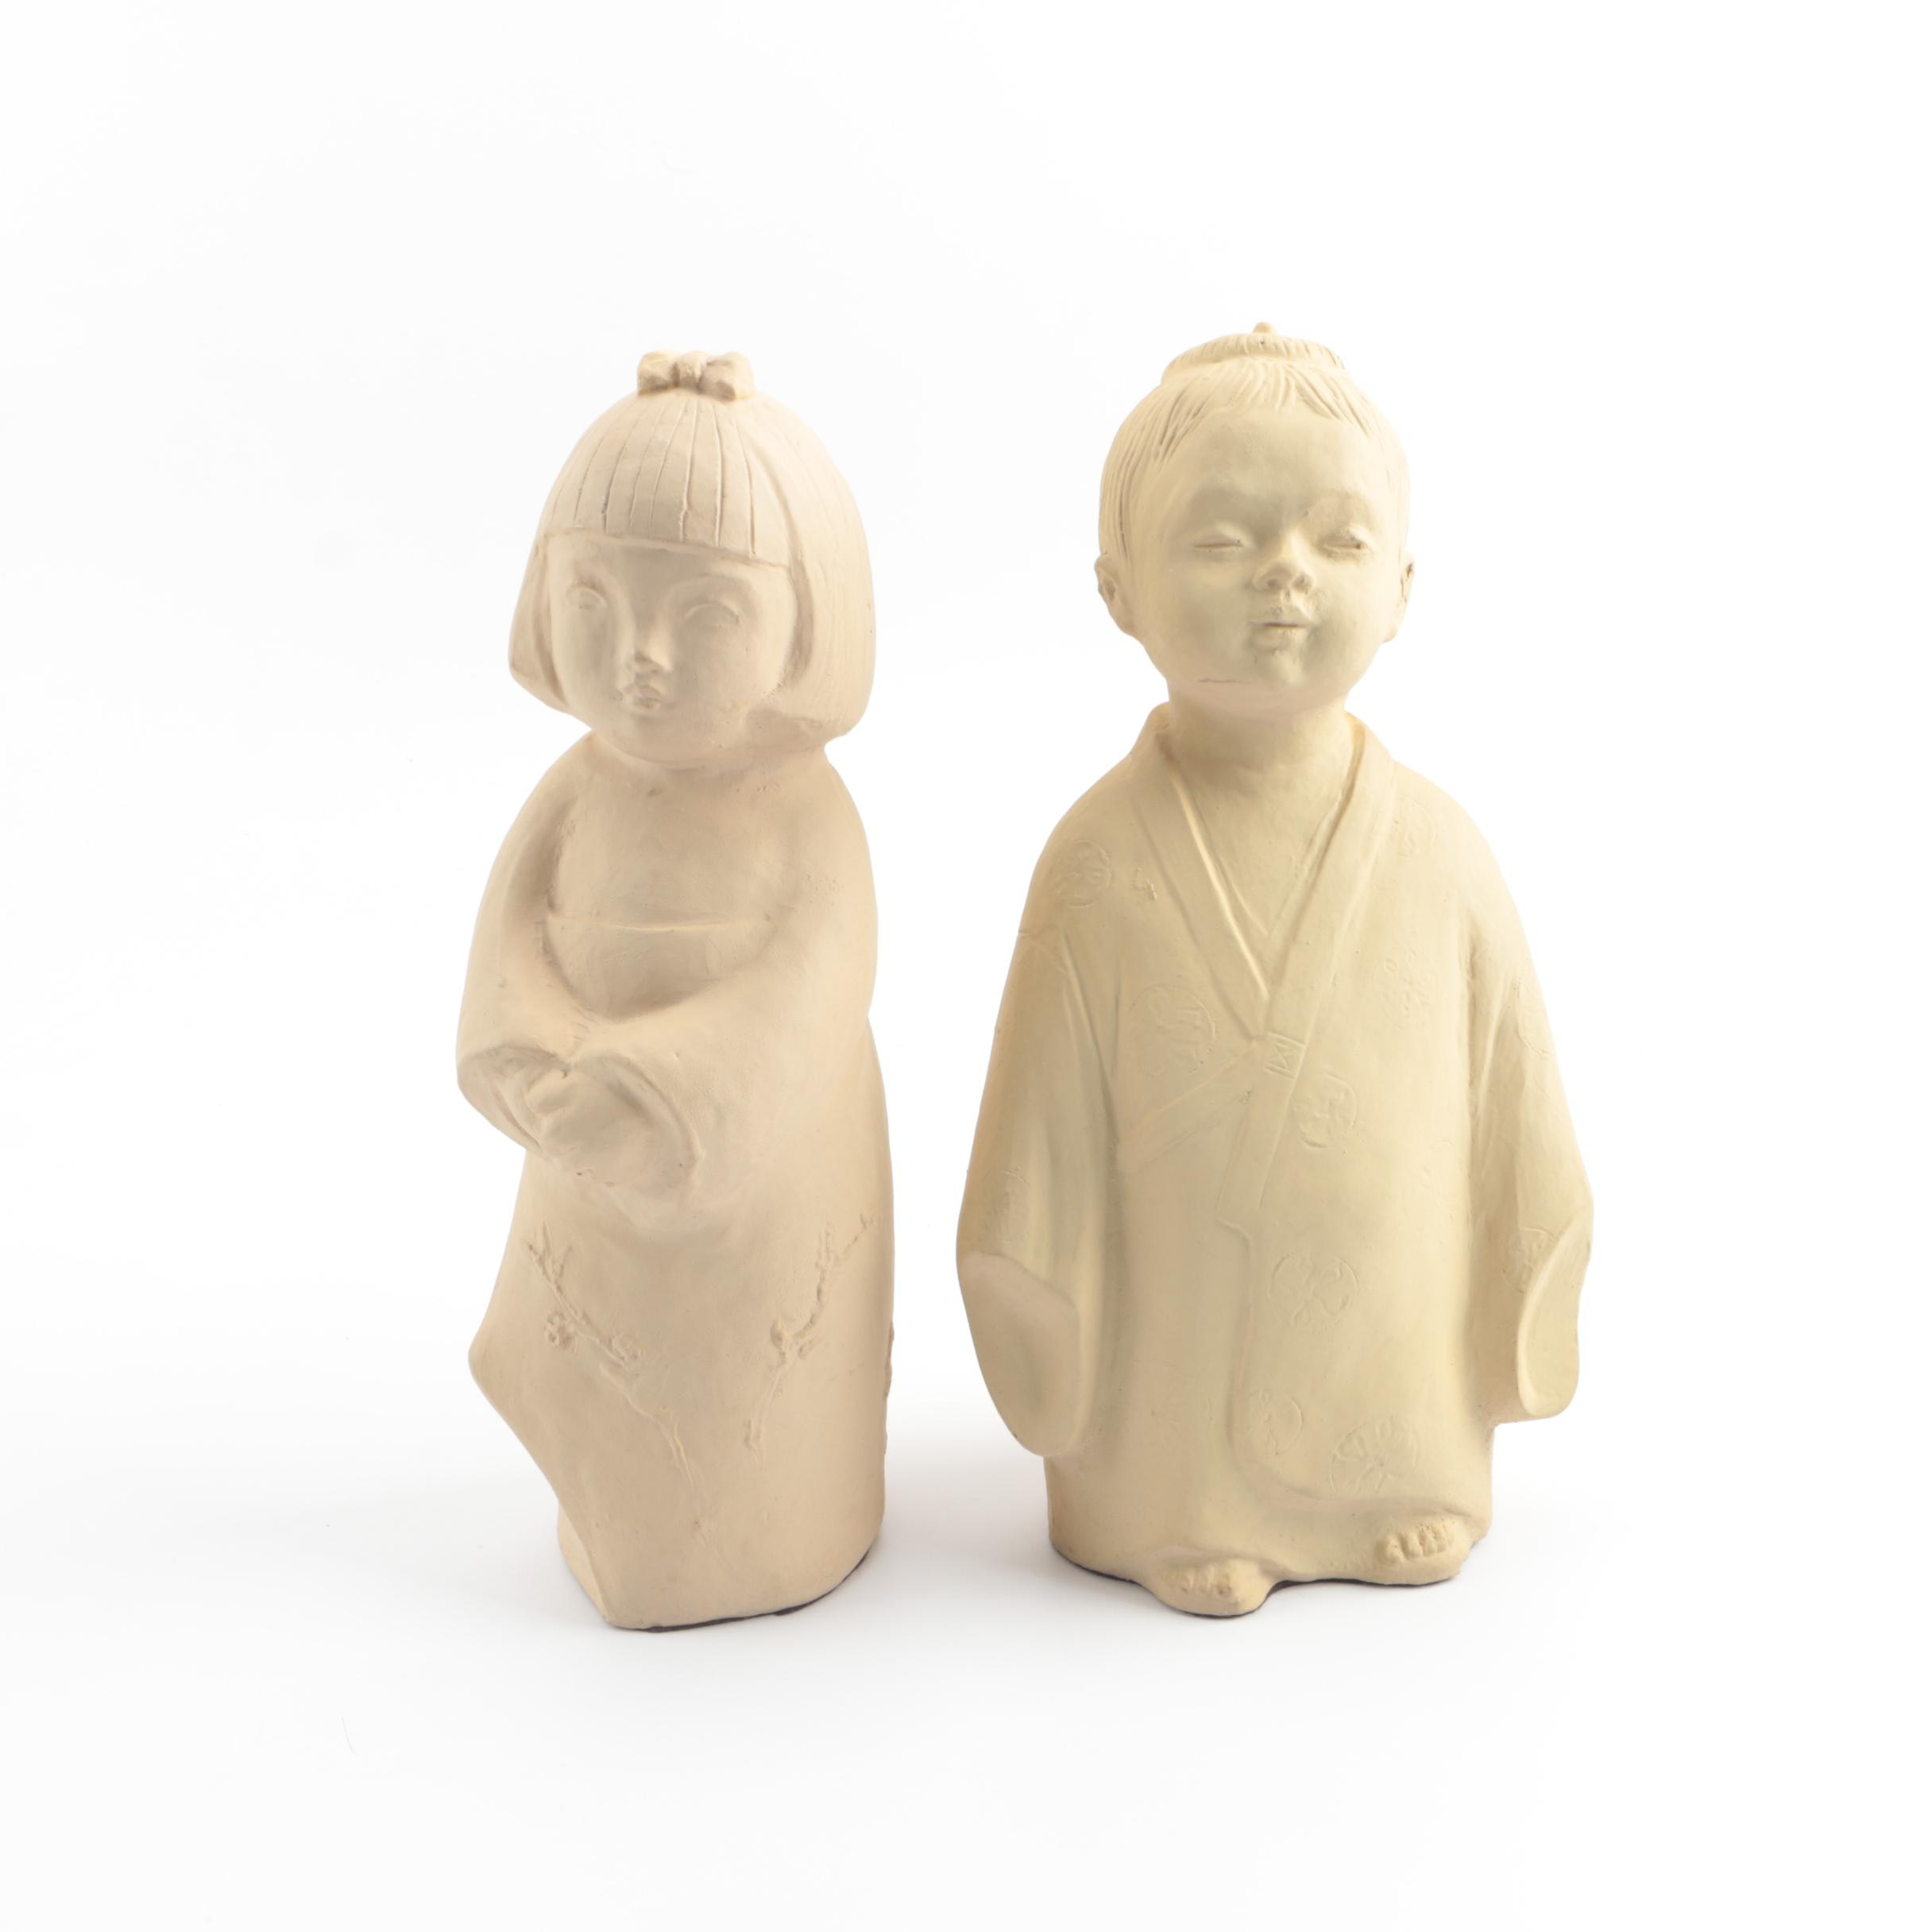 Japanese Inspired Austin Productions Sculptures